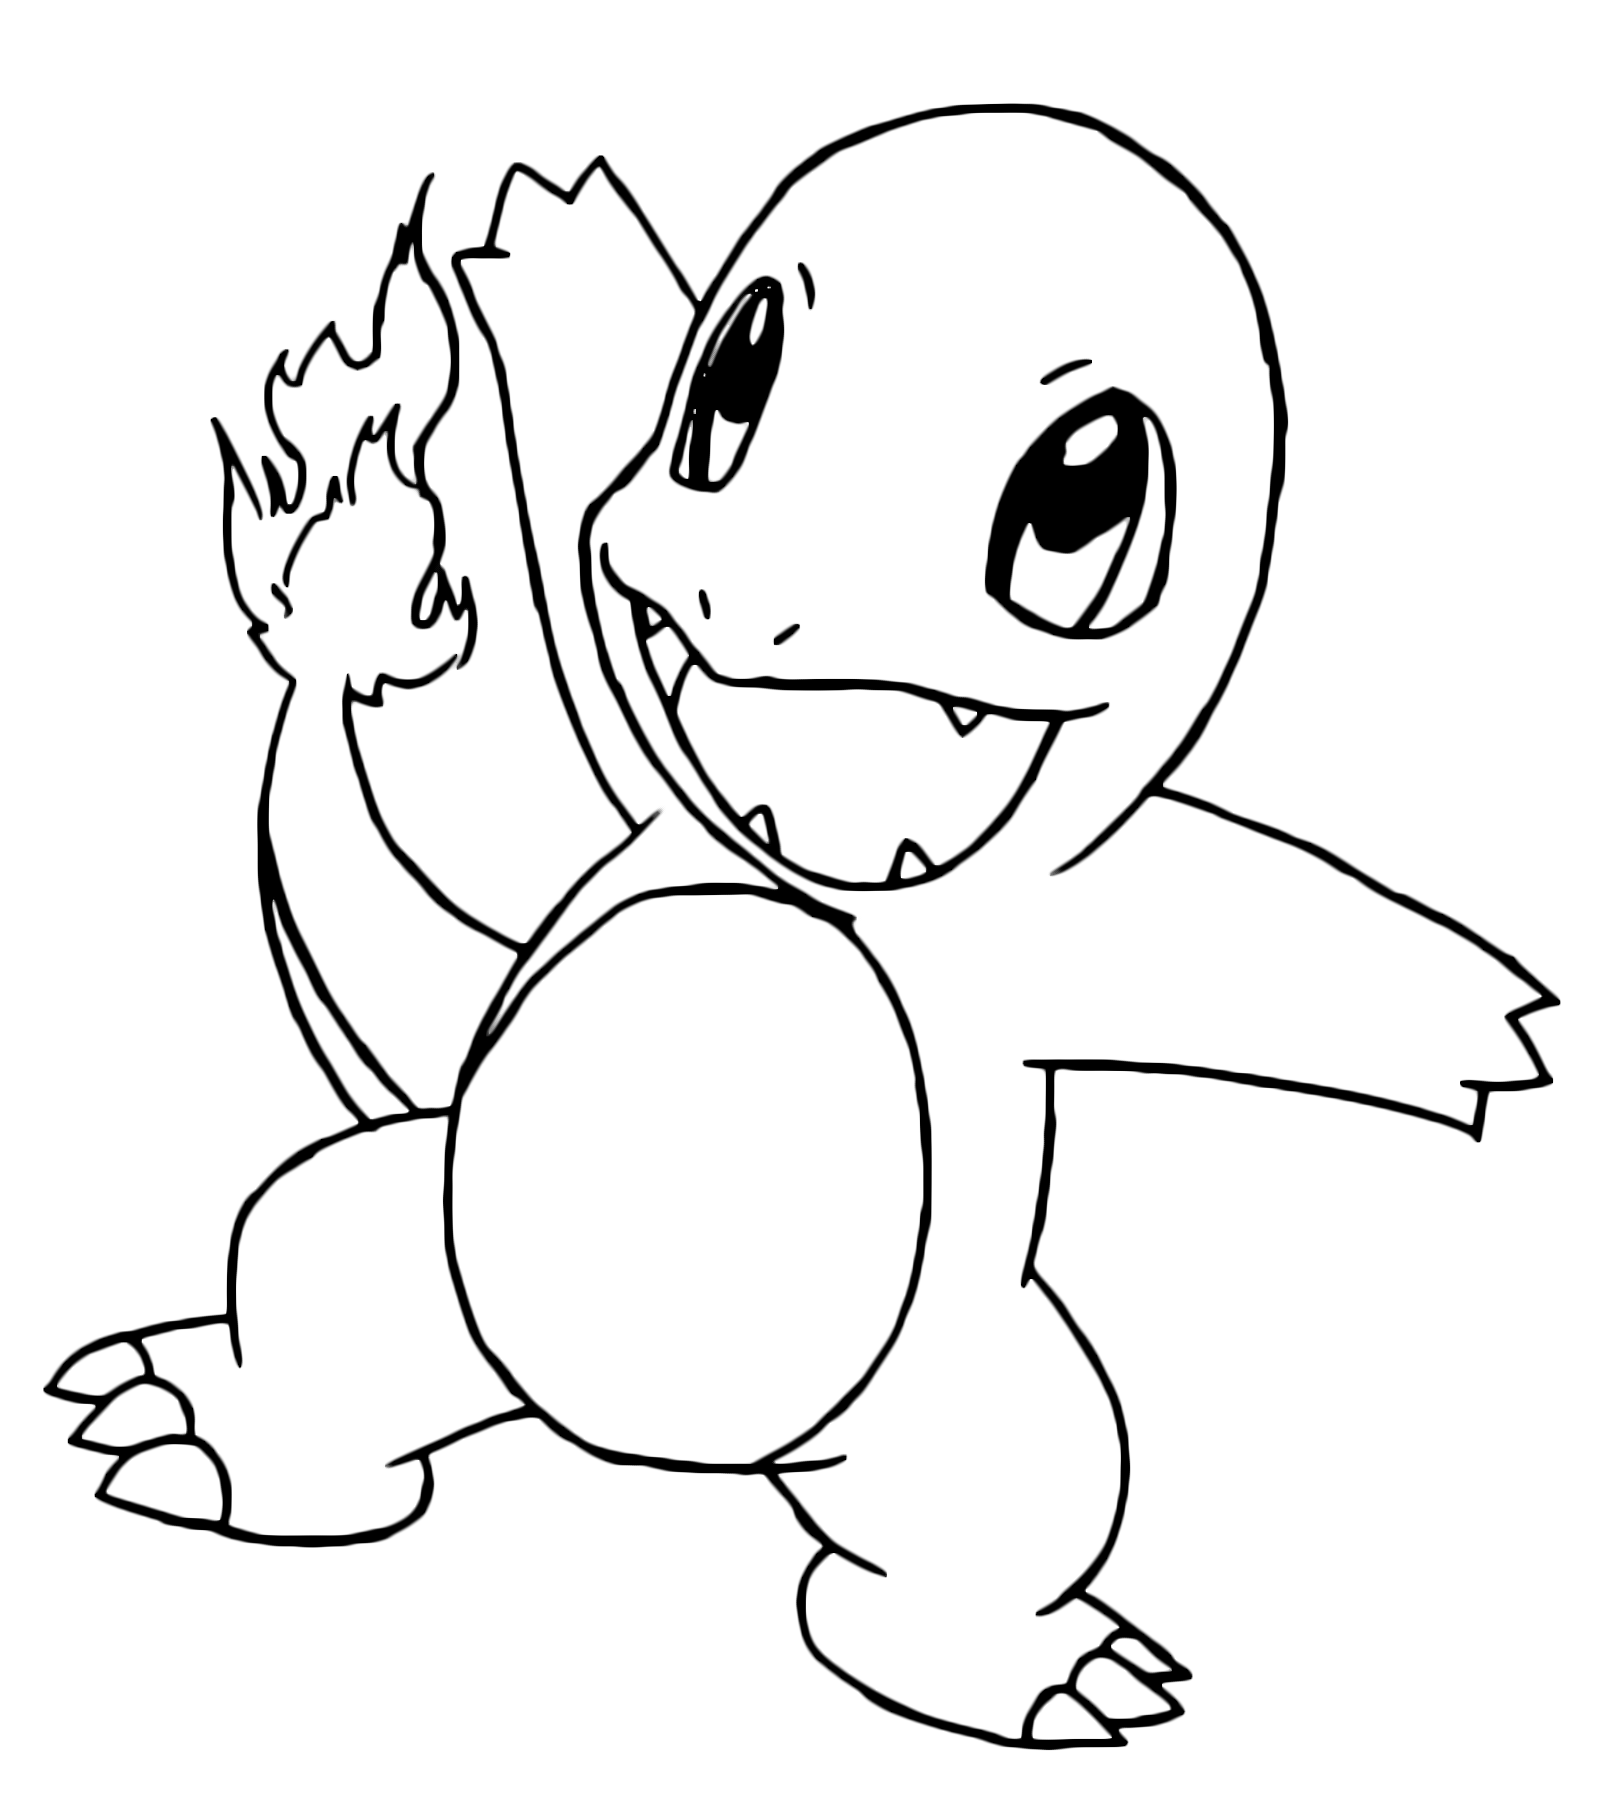 Squirtle coloring pages - Squirtle pagine da colorare ...